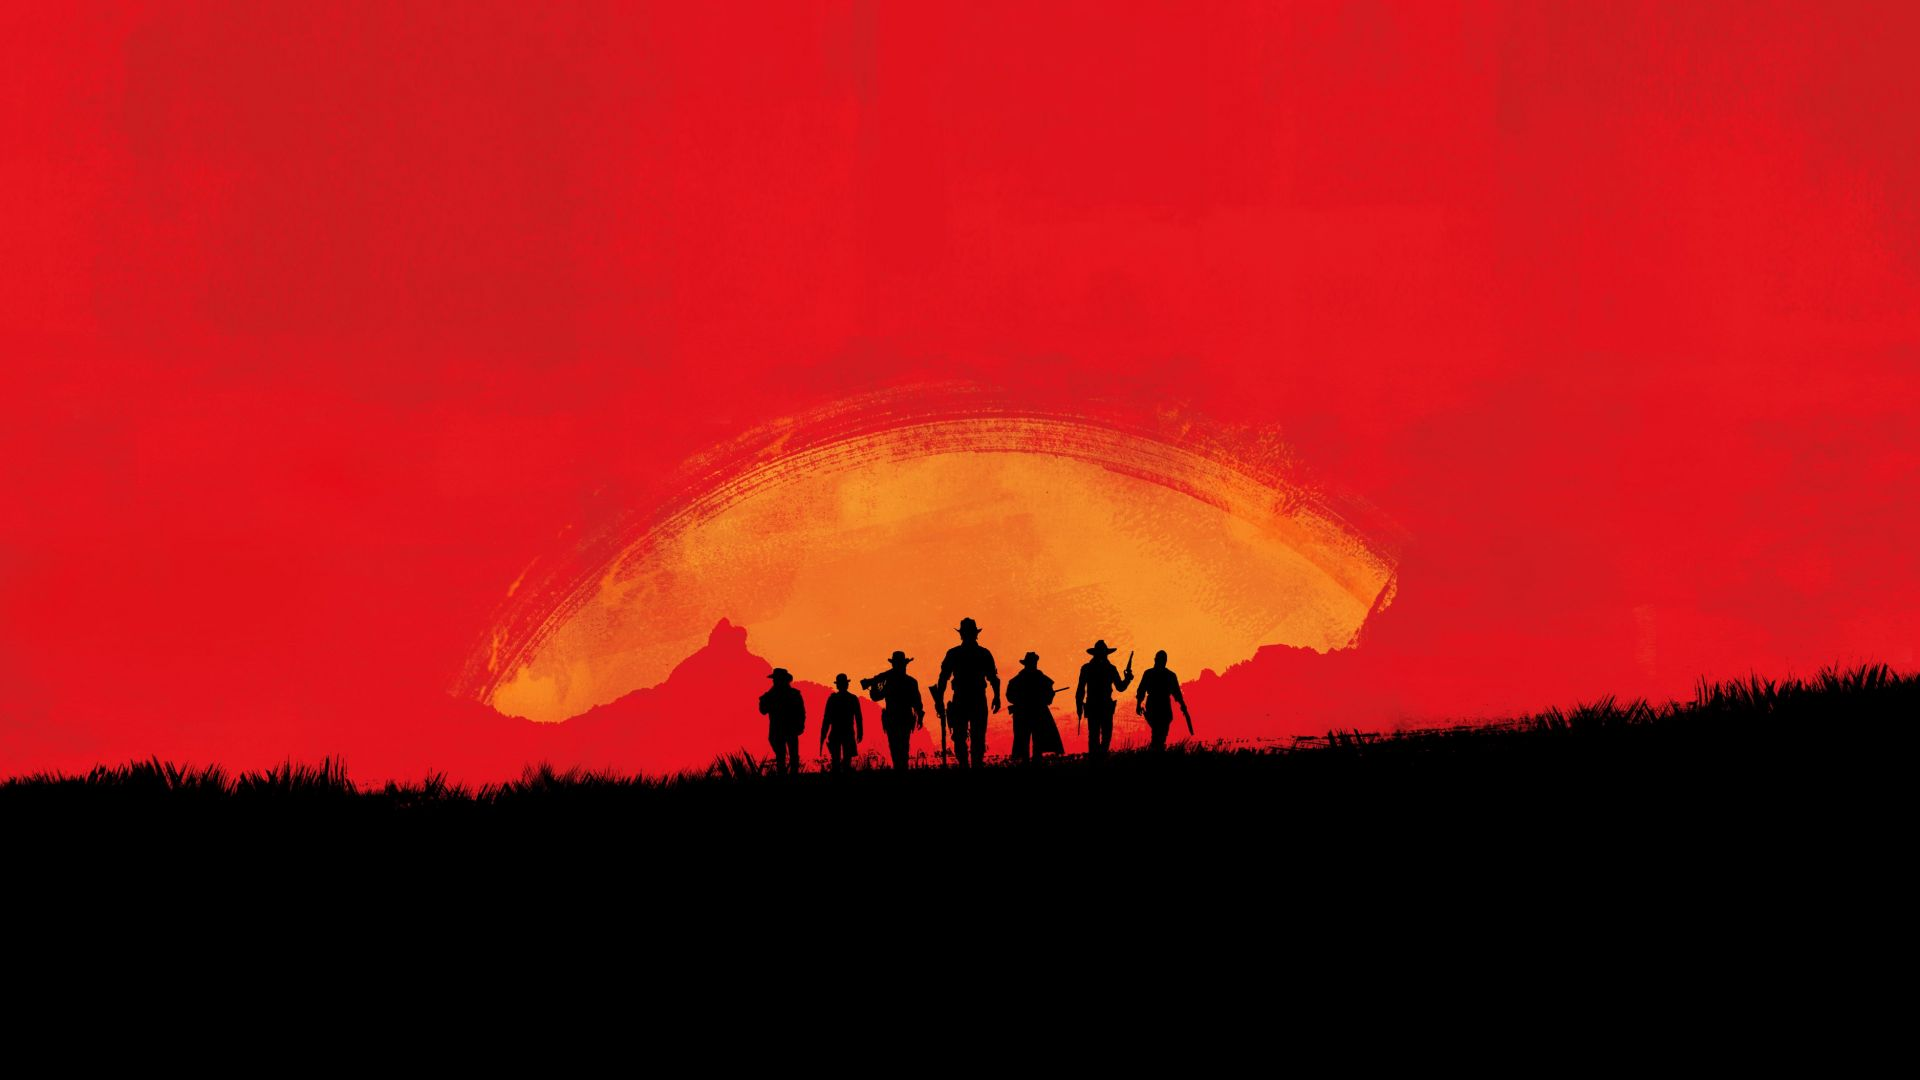 Red Dead Redemption 2, rockstar, PS4, Xbox One (horizontal)